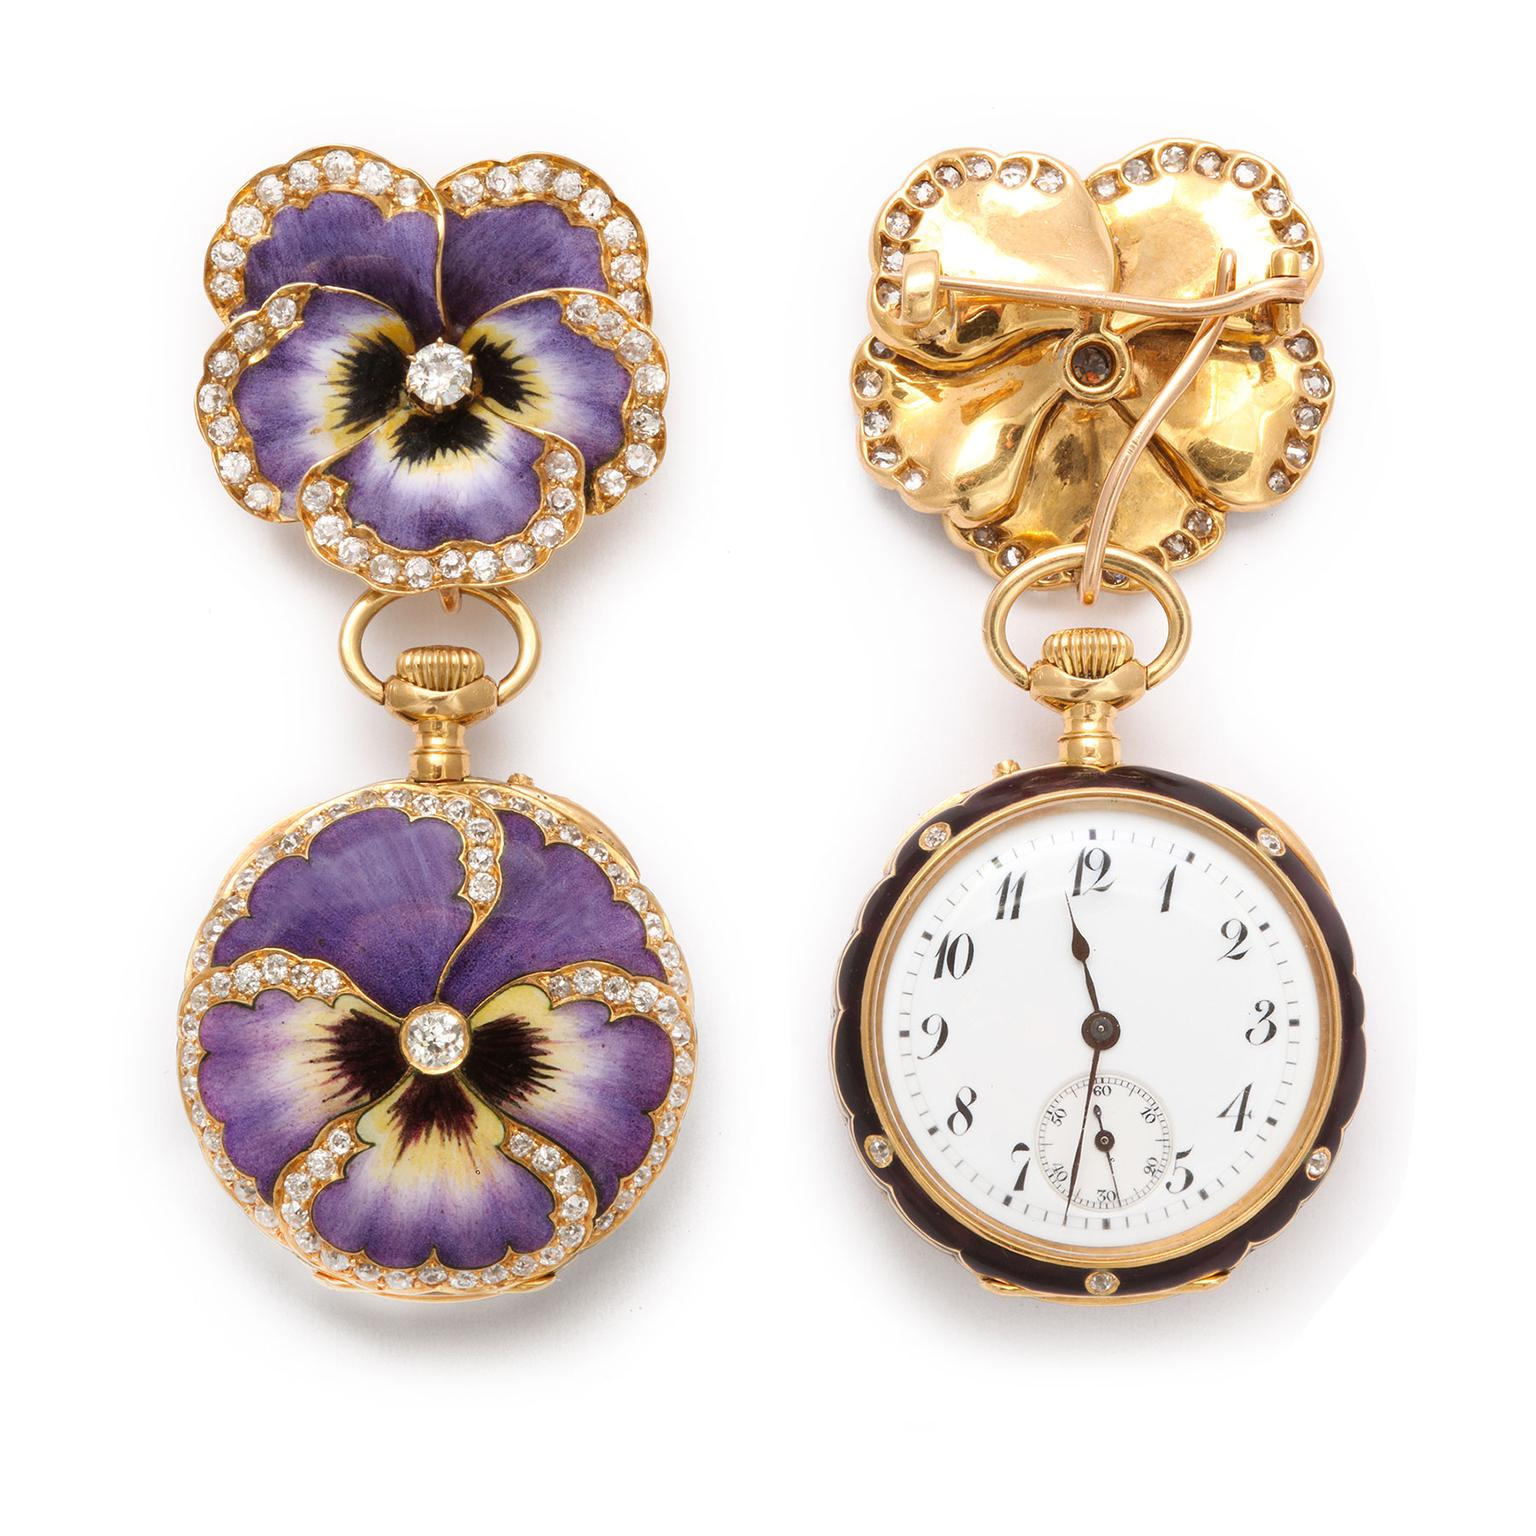 A La Vielle Russie brooch watch